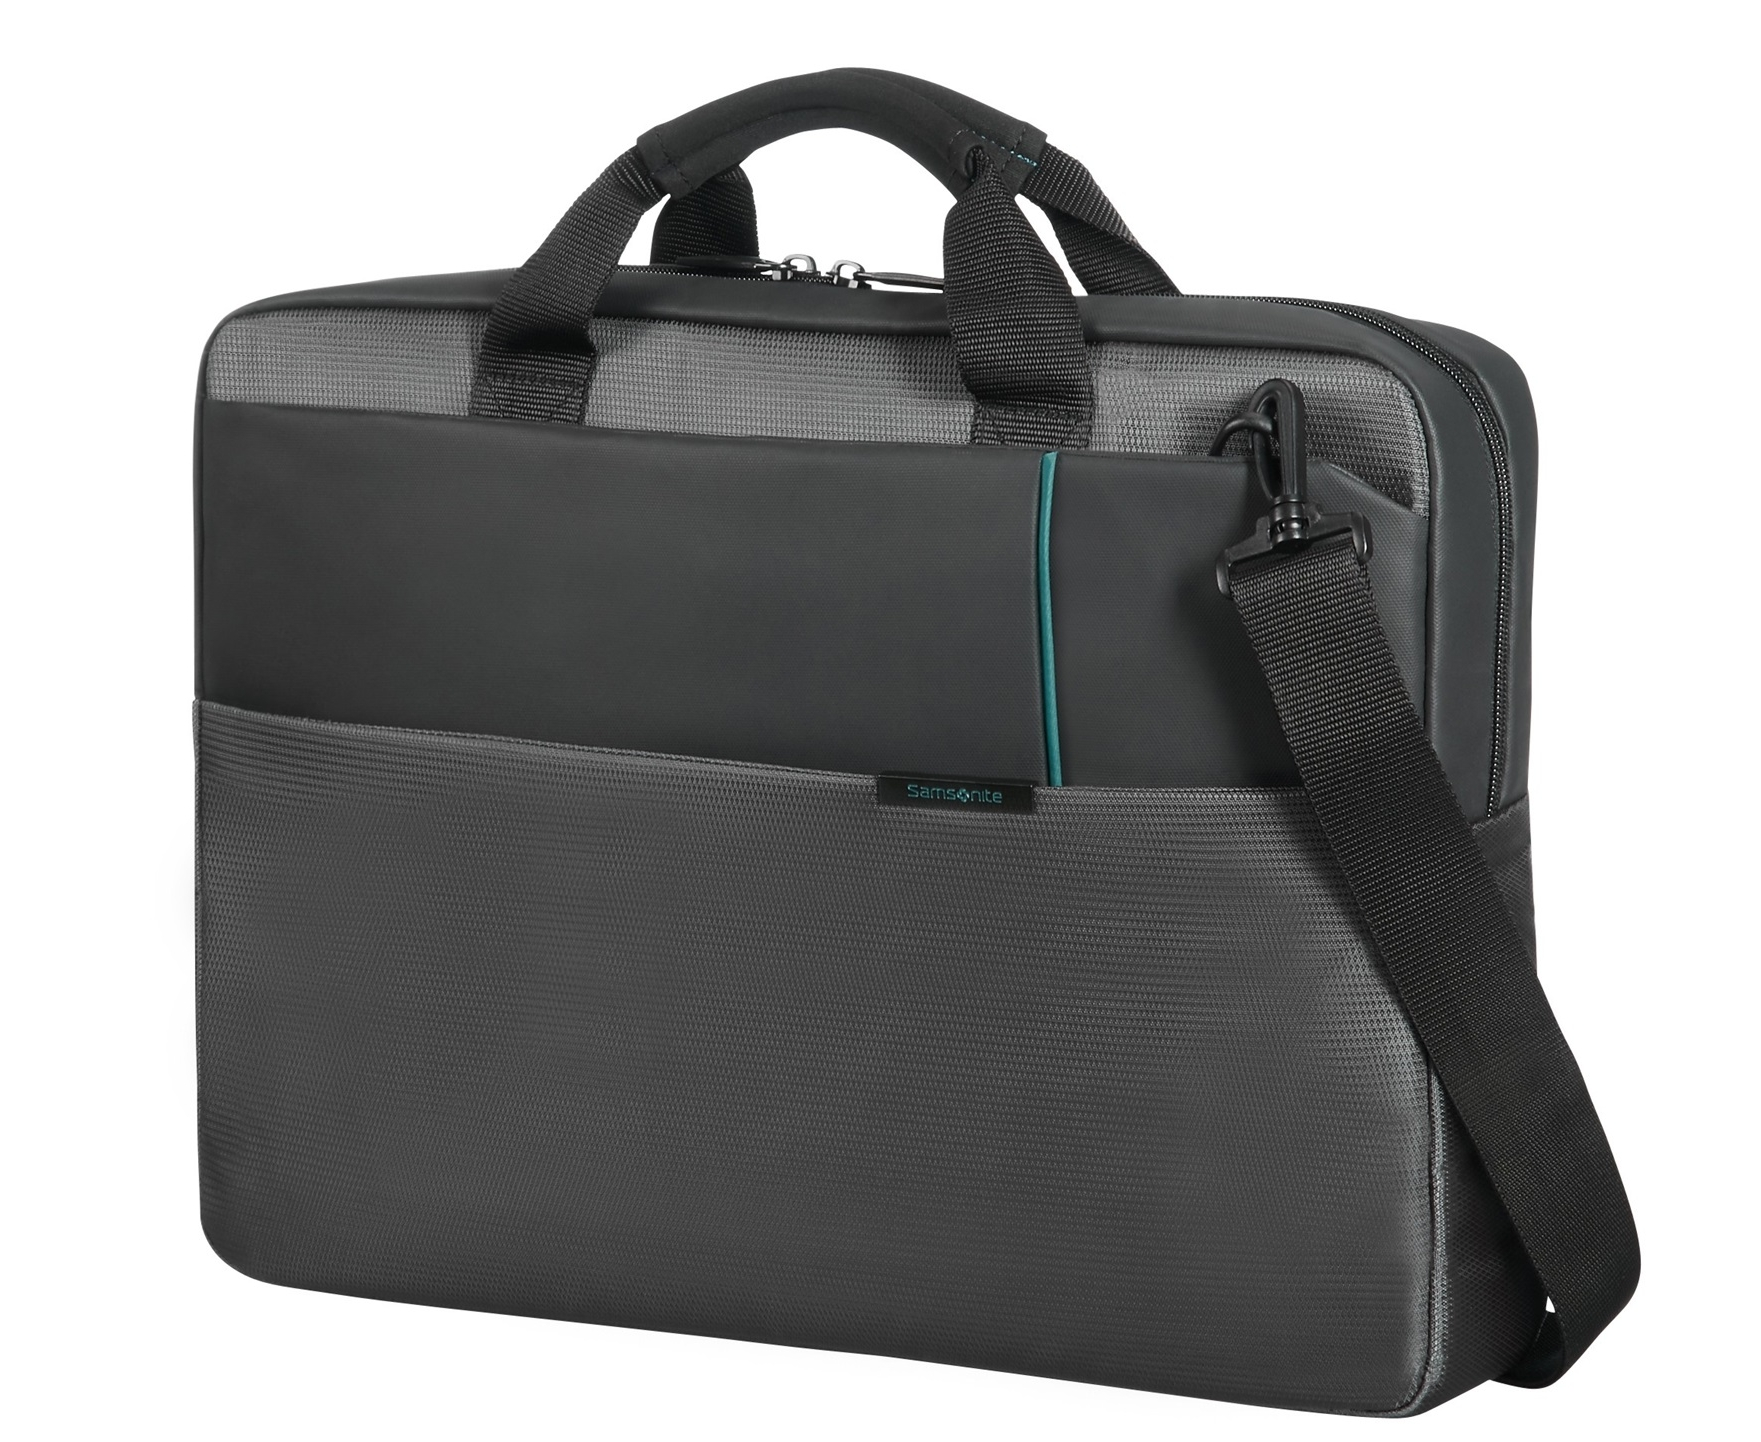 SAMSONITE - BORSE NOTEBOOK - 5414847698224